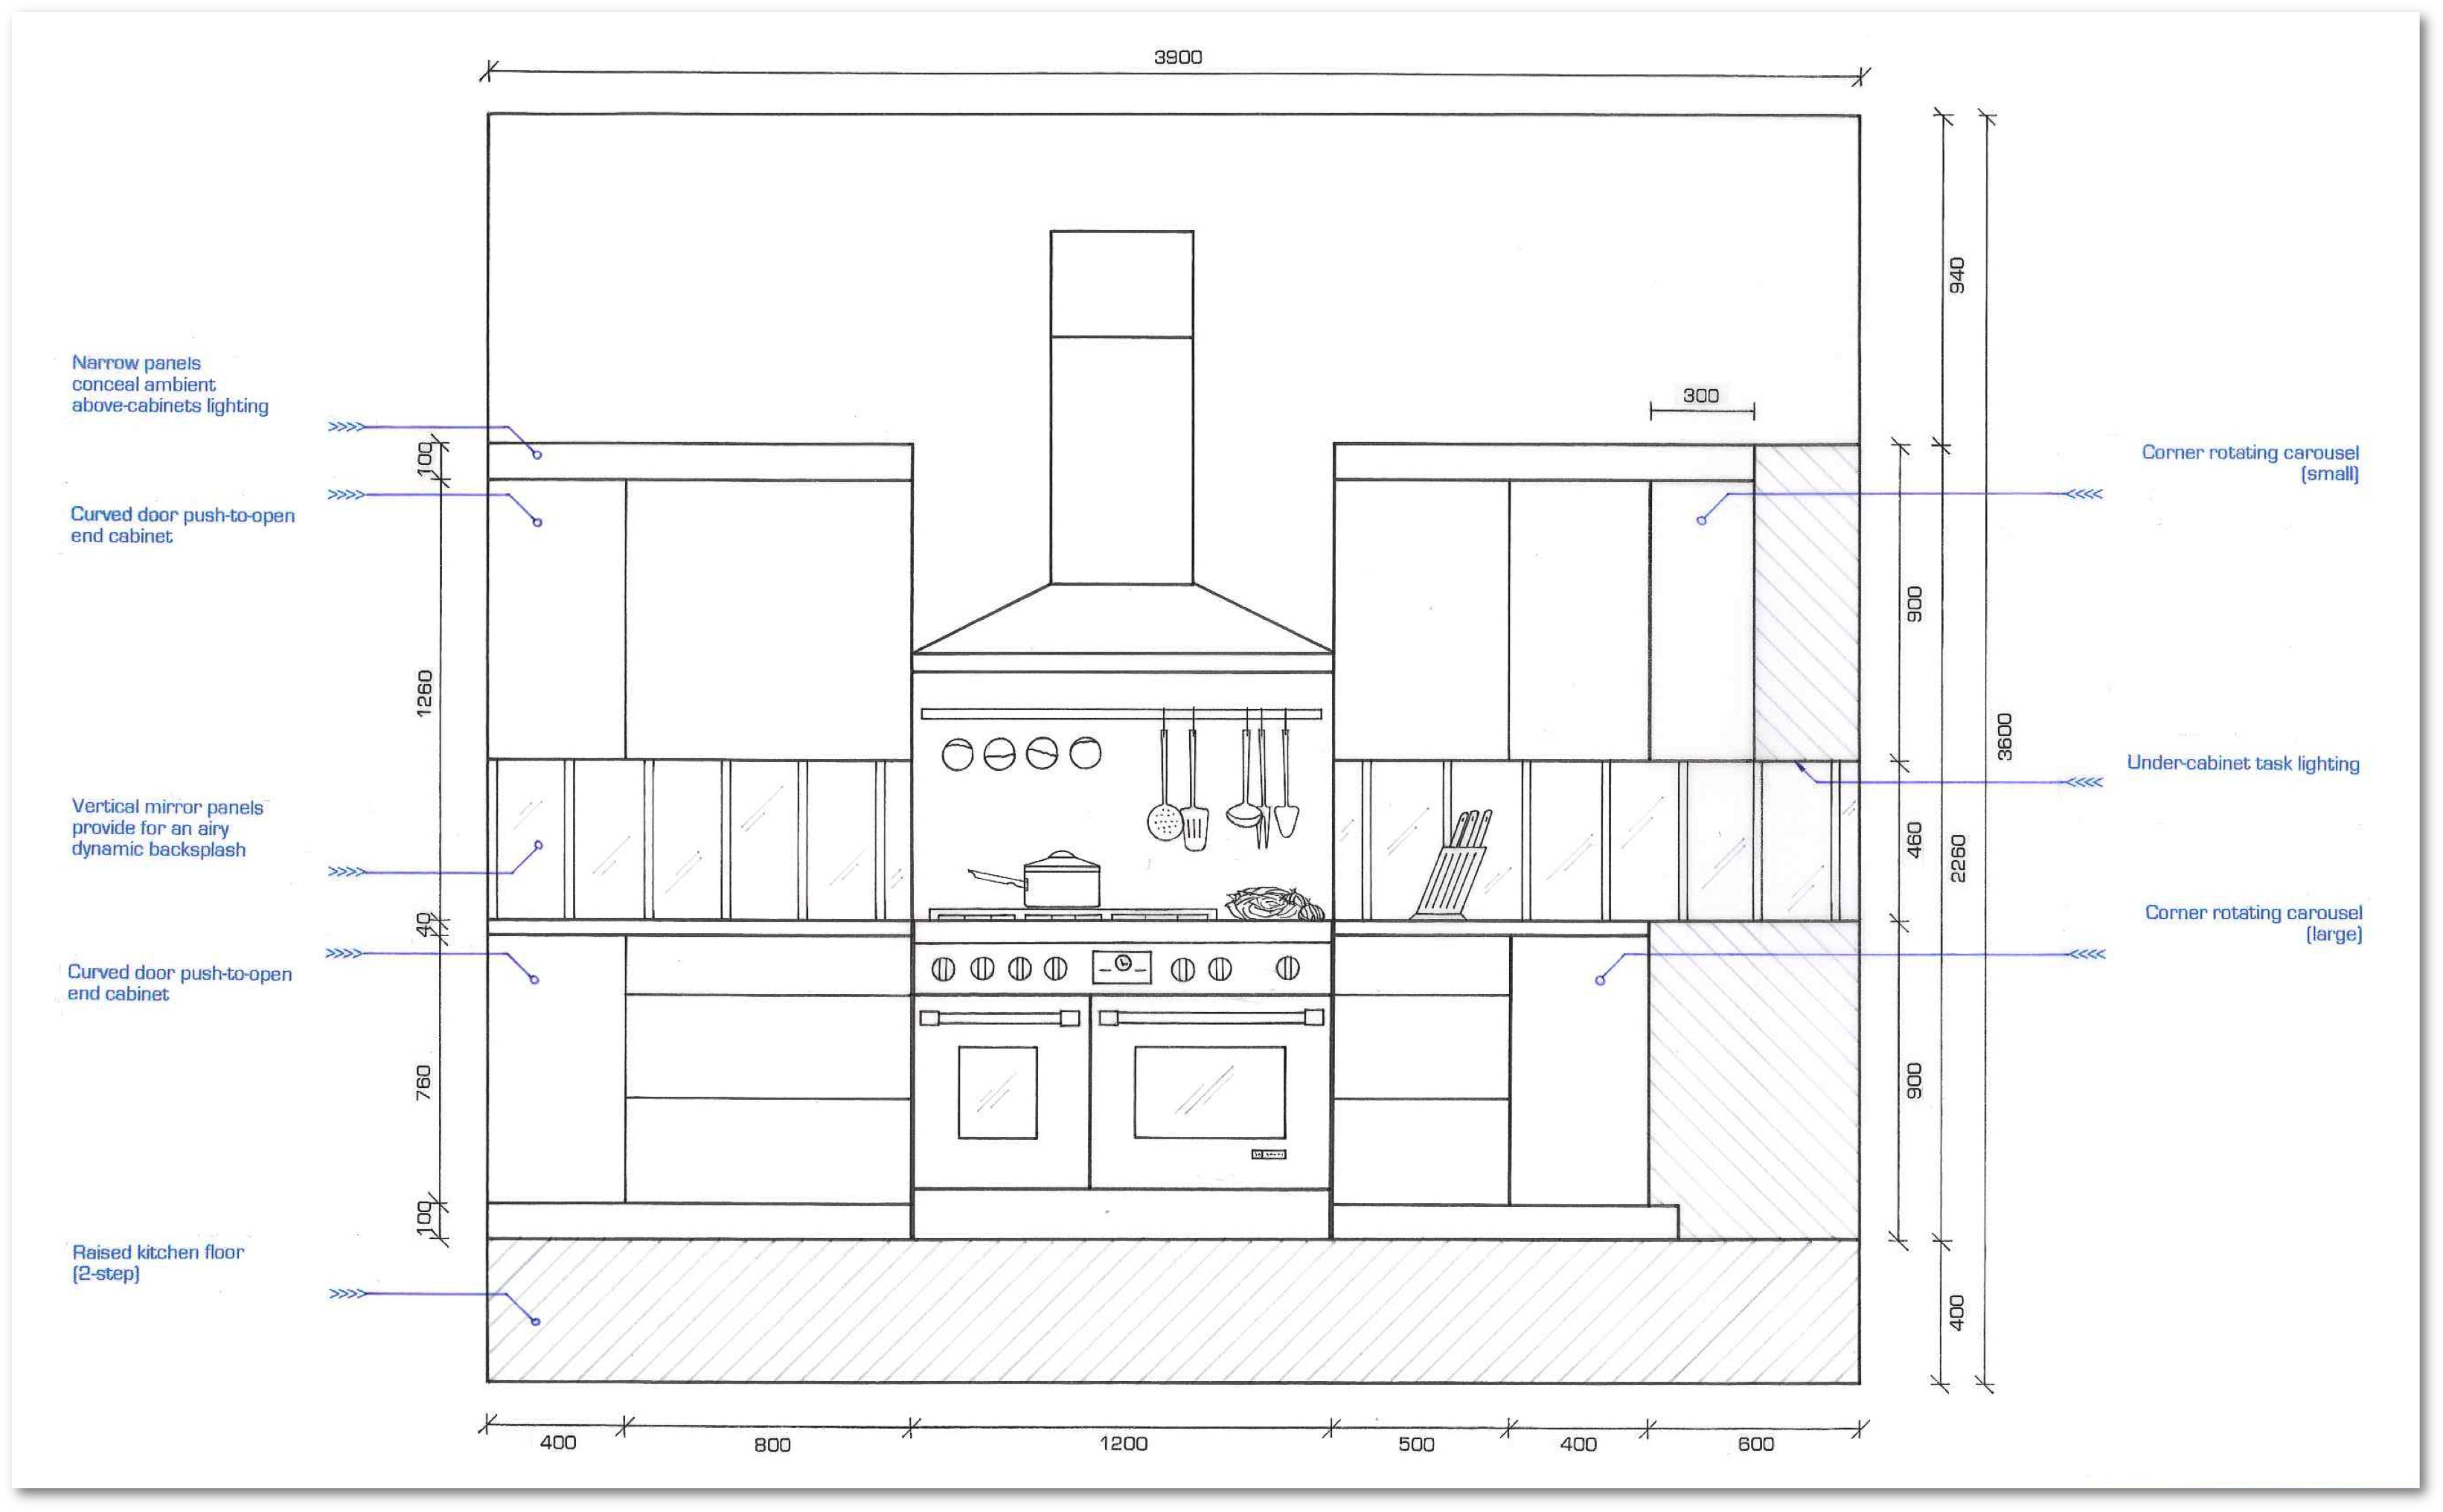 Kitchen Plan Elevation View : Loft apartment kitchen elevations section